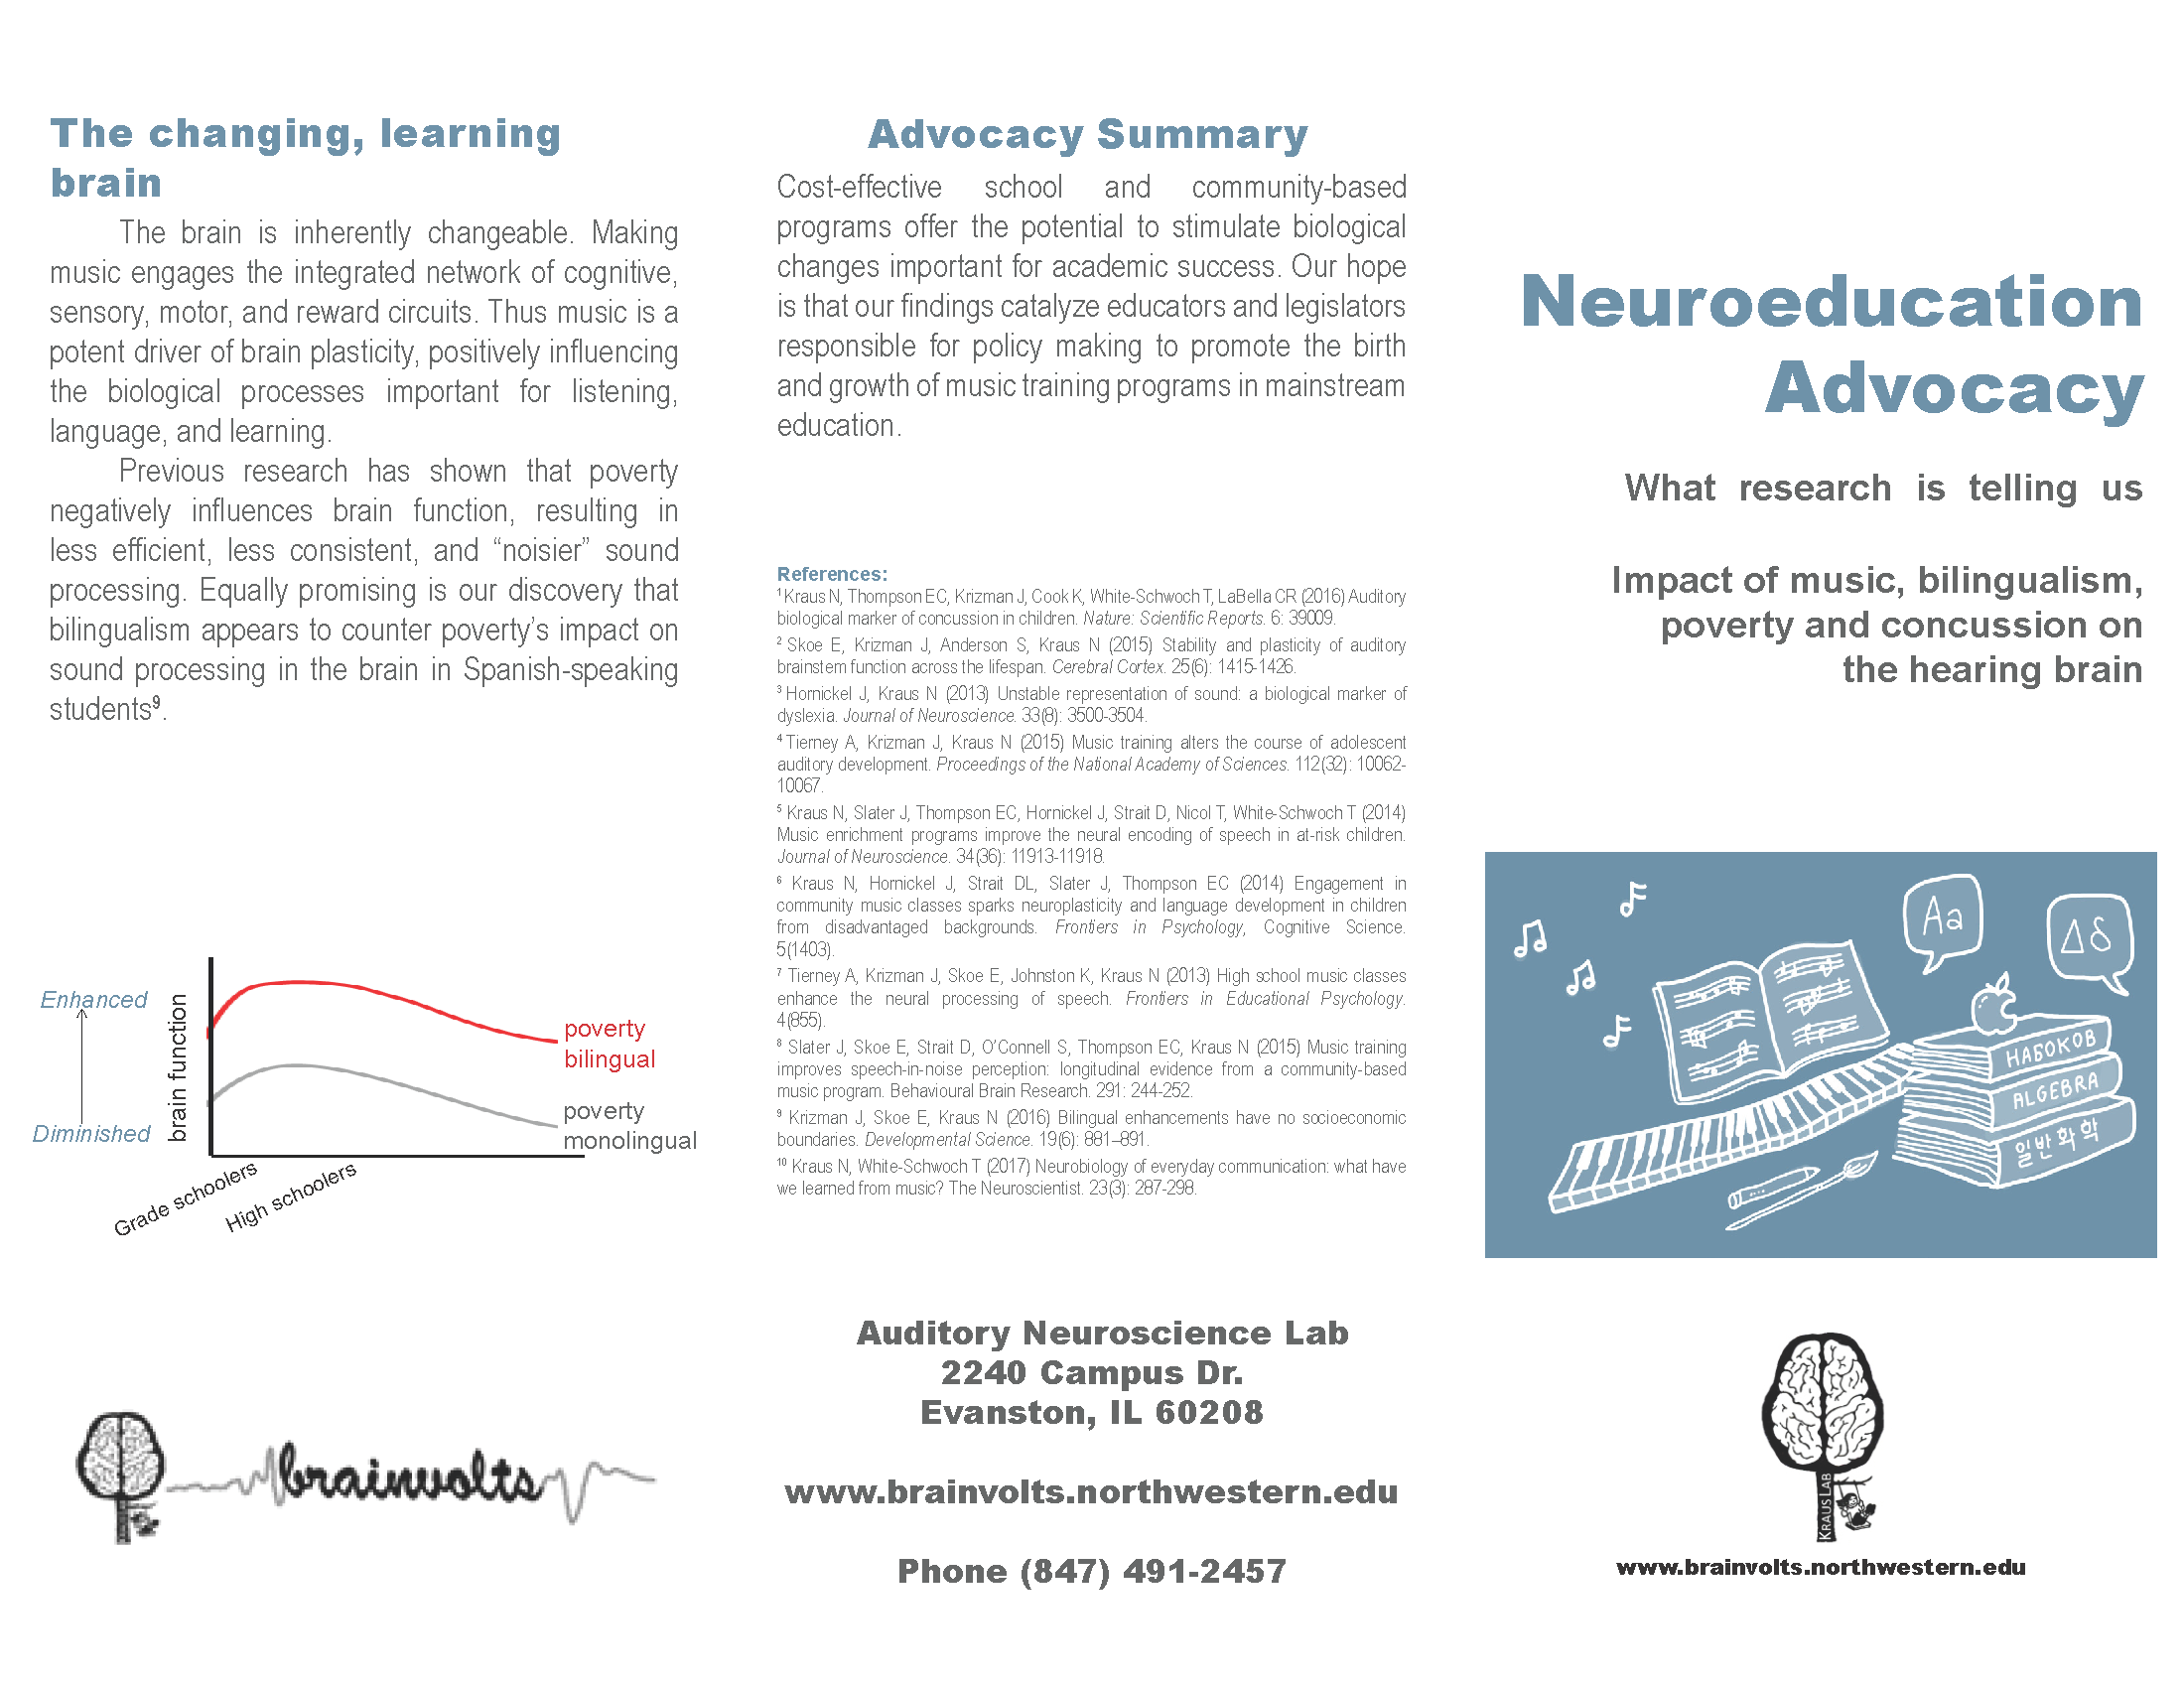 Why Educators Trained In Neuroscience >> Advocacy Brainvolts